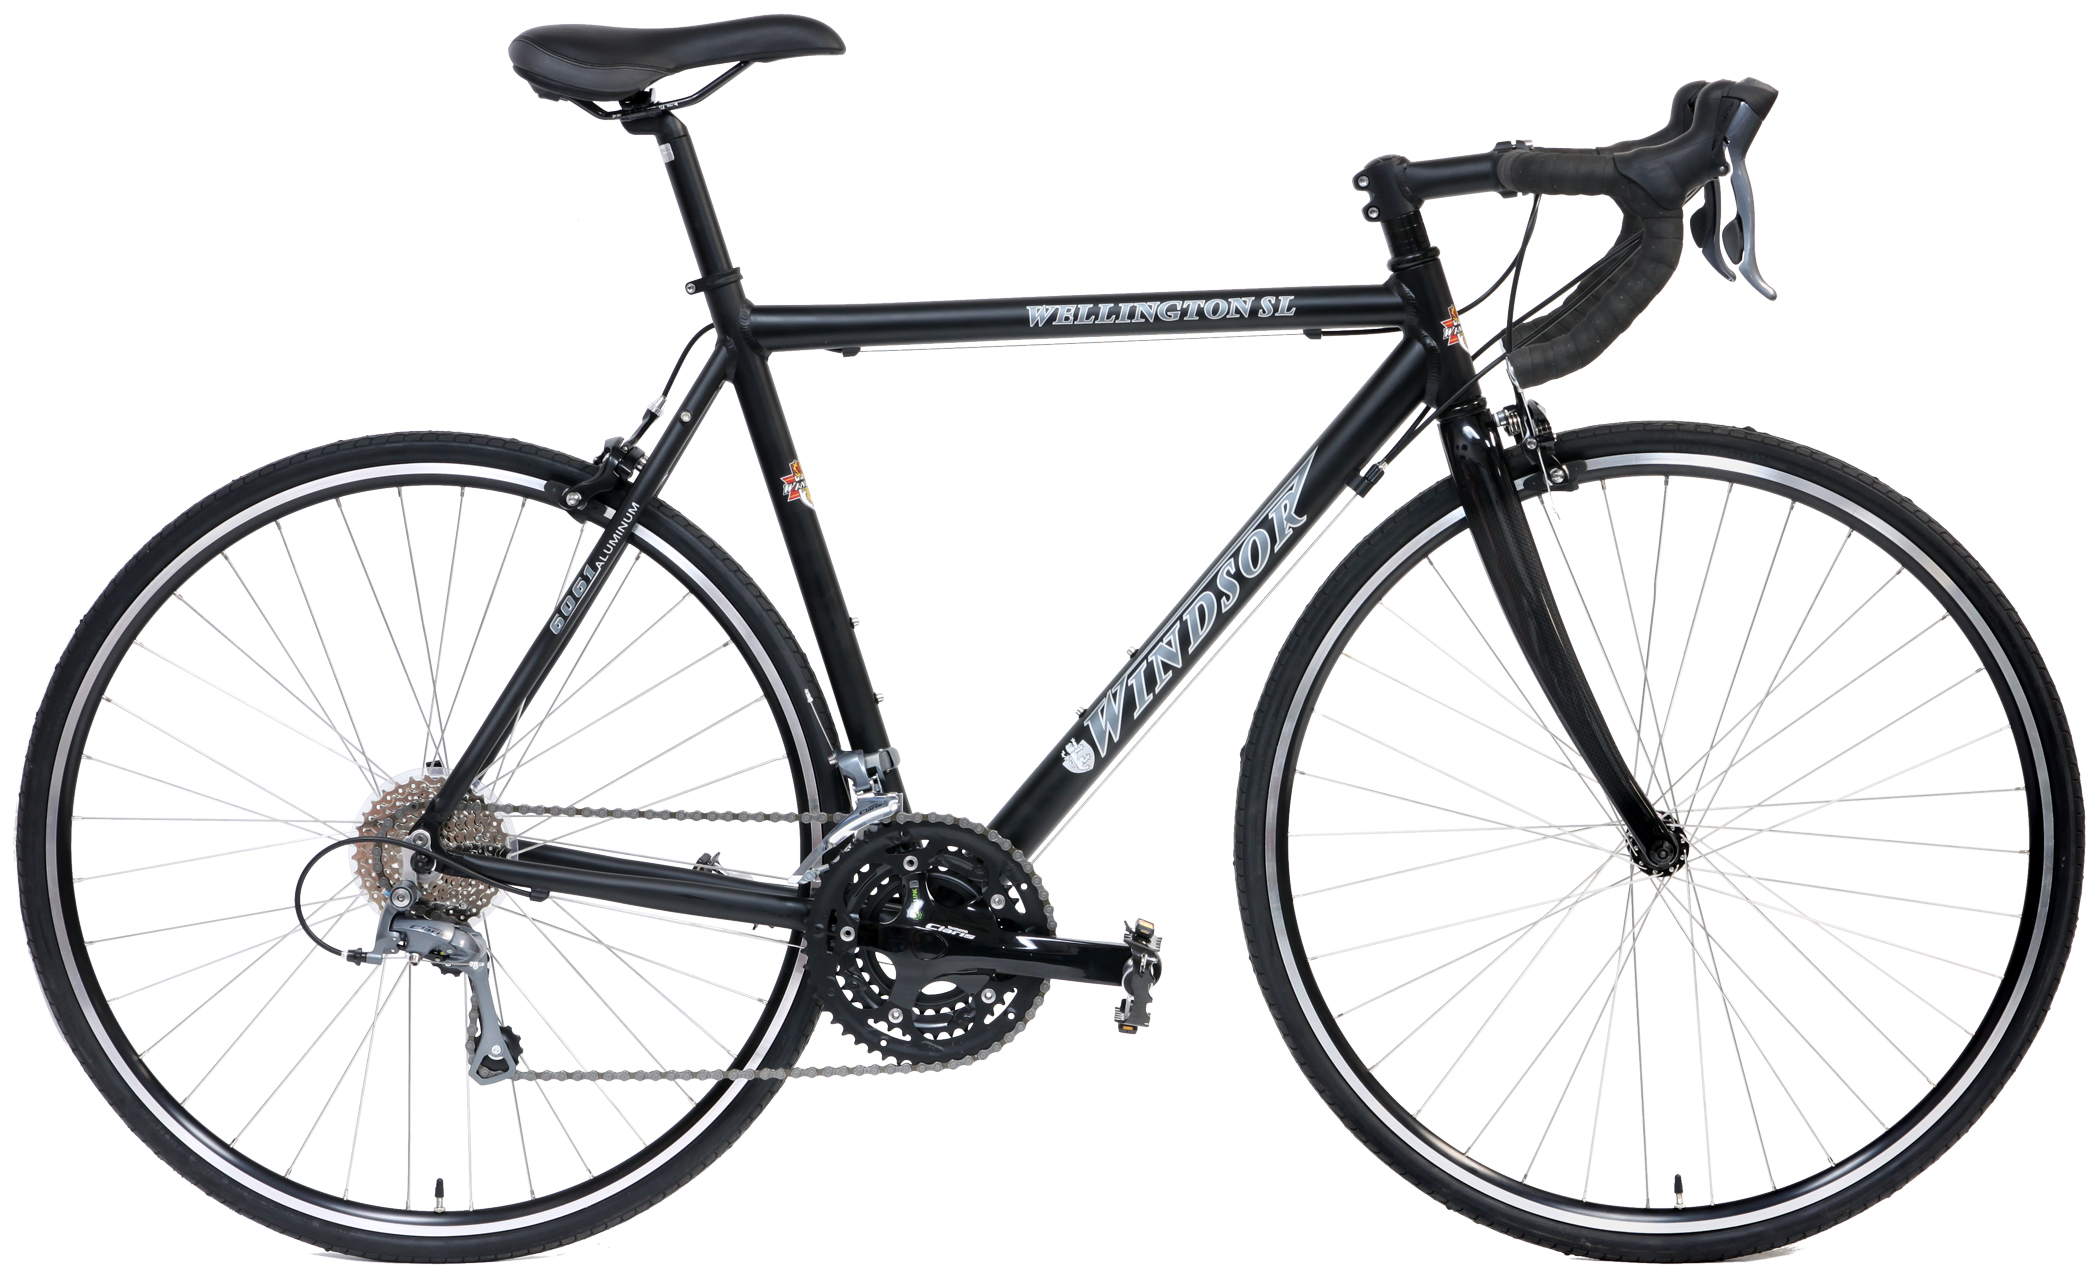 WELLINGTON SL - SHIMANO ALUMINUM 24sp ROAD BIKE w/ CARBON